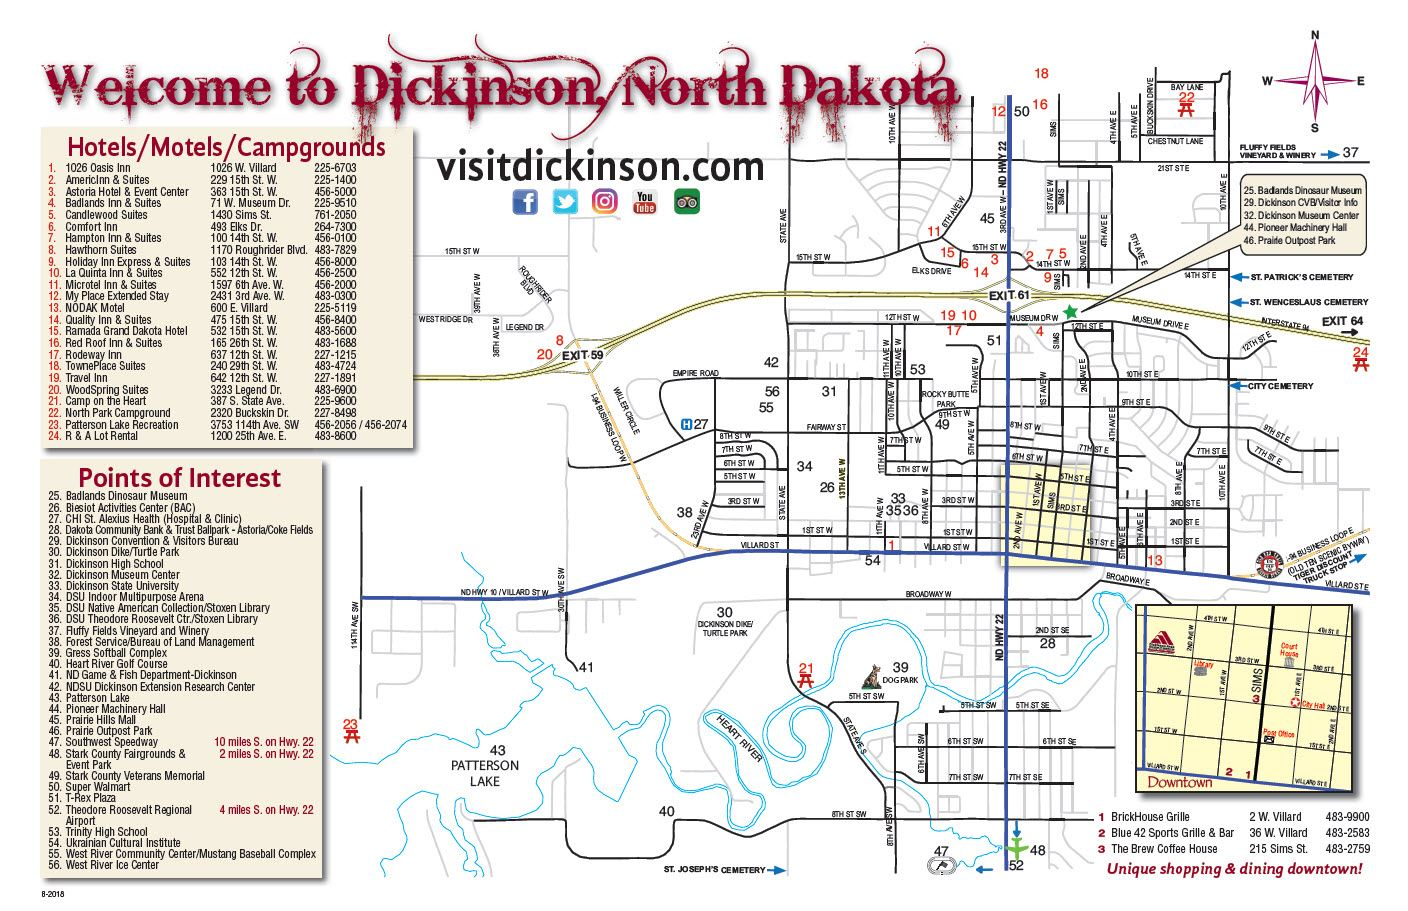 Find lodging, attractions, dining, city information, and more on our map of Dickinson, North Dakota.